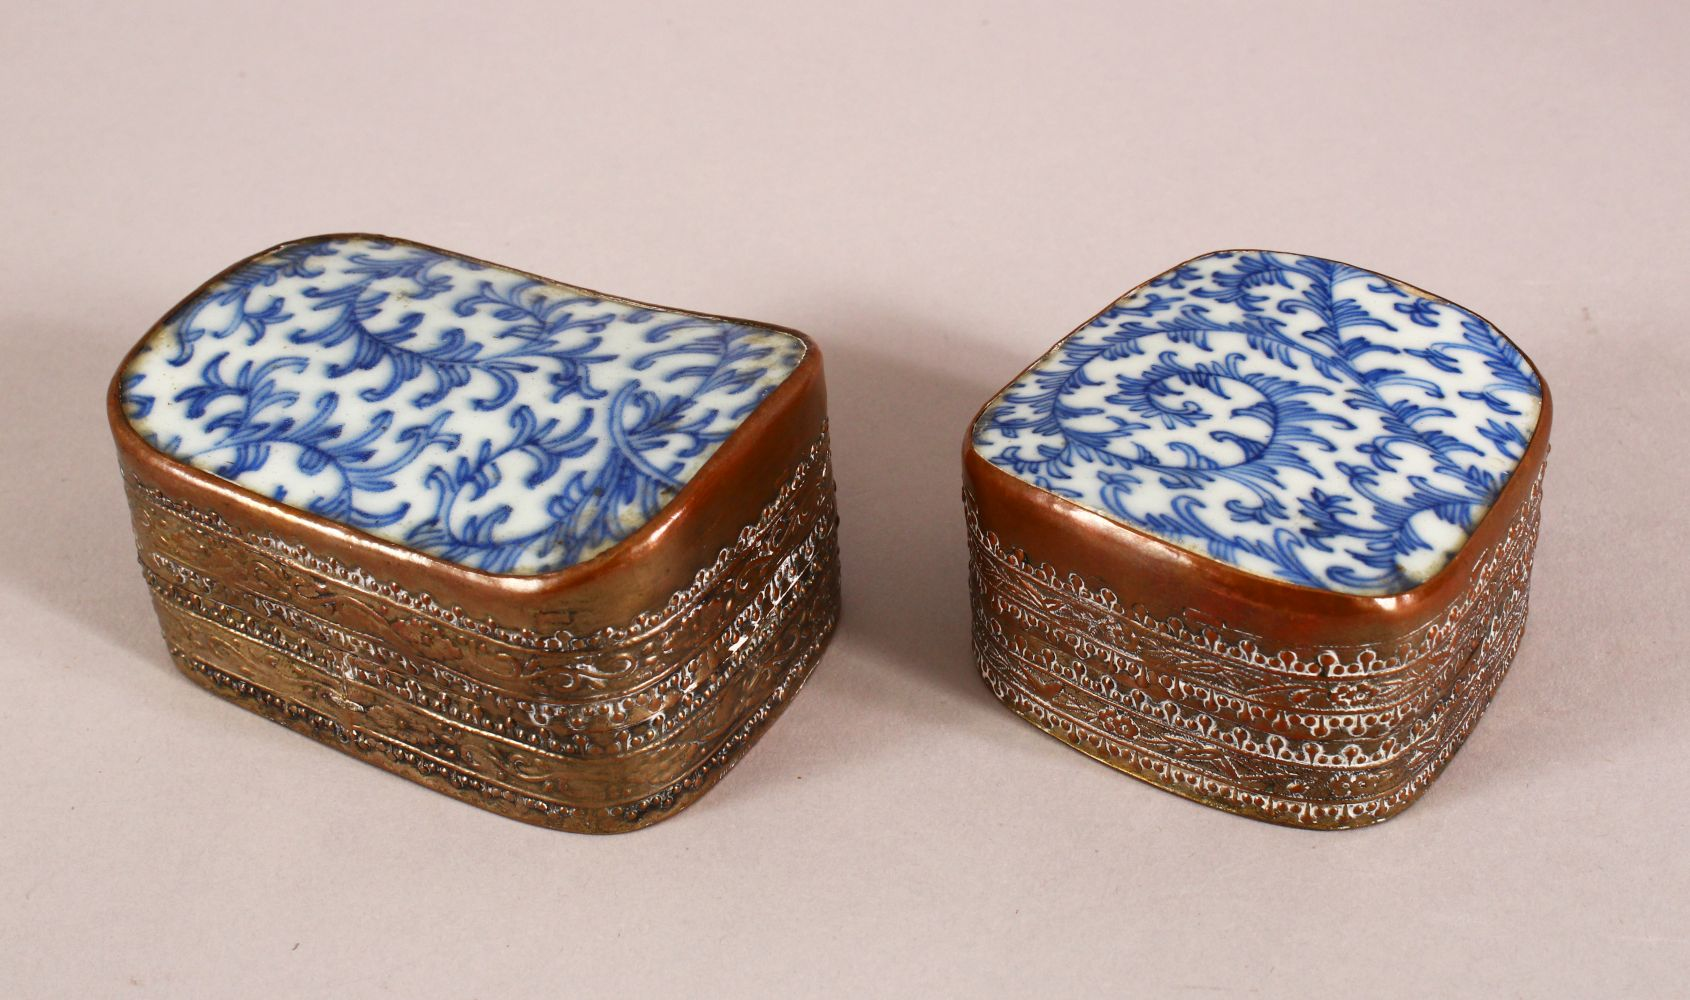 TWO 19TH CENTURY CHINESE BLUE AND WHITE PORCELAIN AND METAL POWDER BOXES, the metal mounts